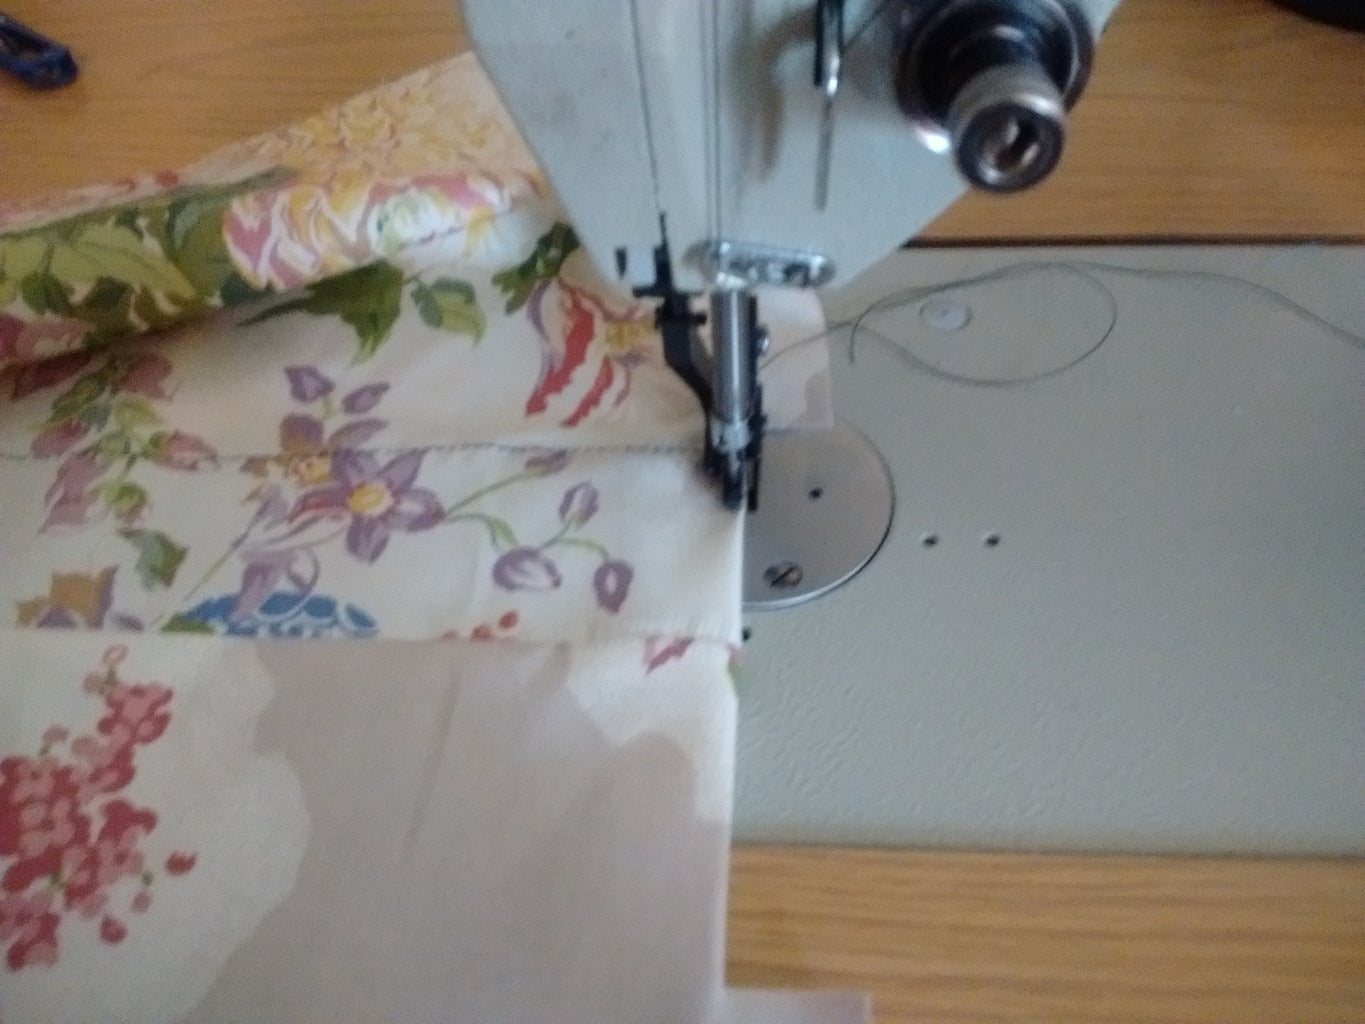 Sew the Casing Ends